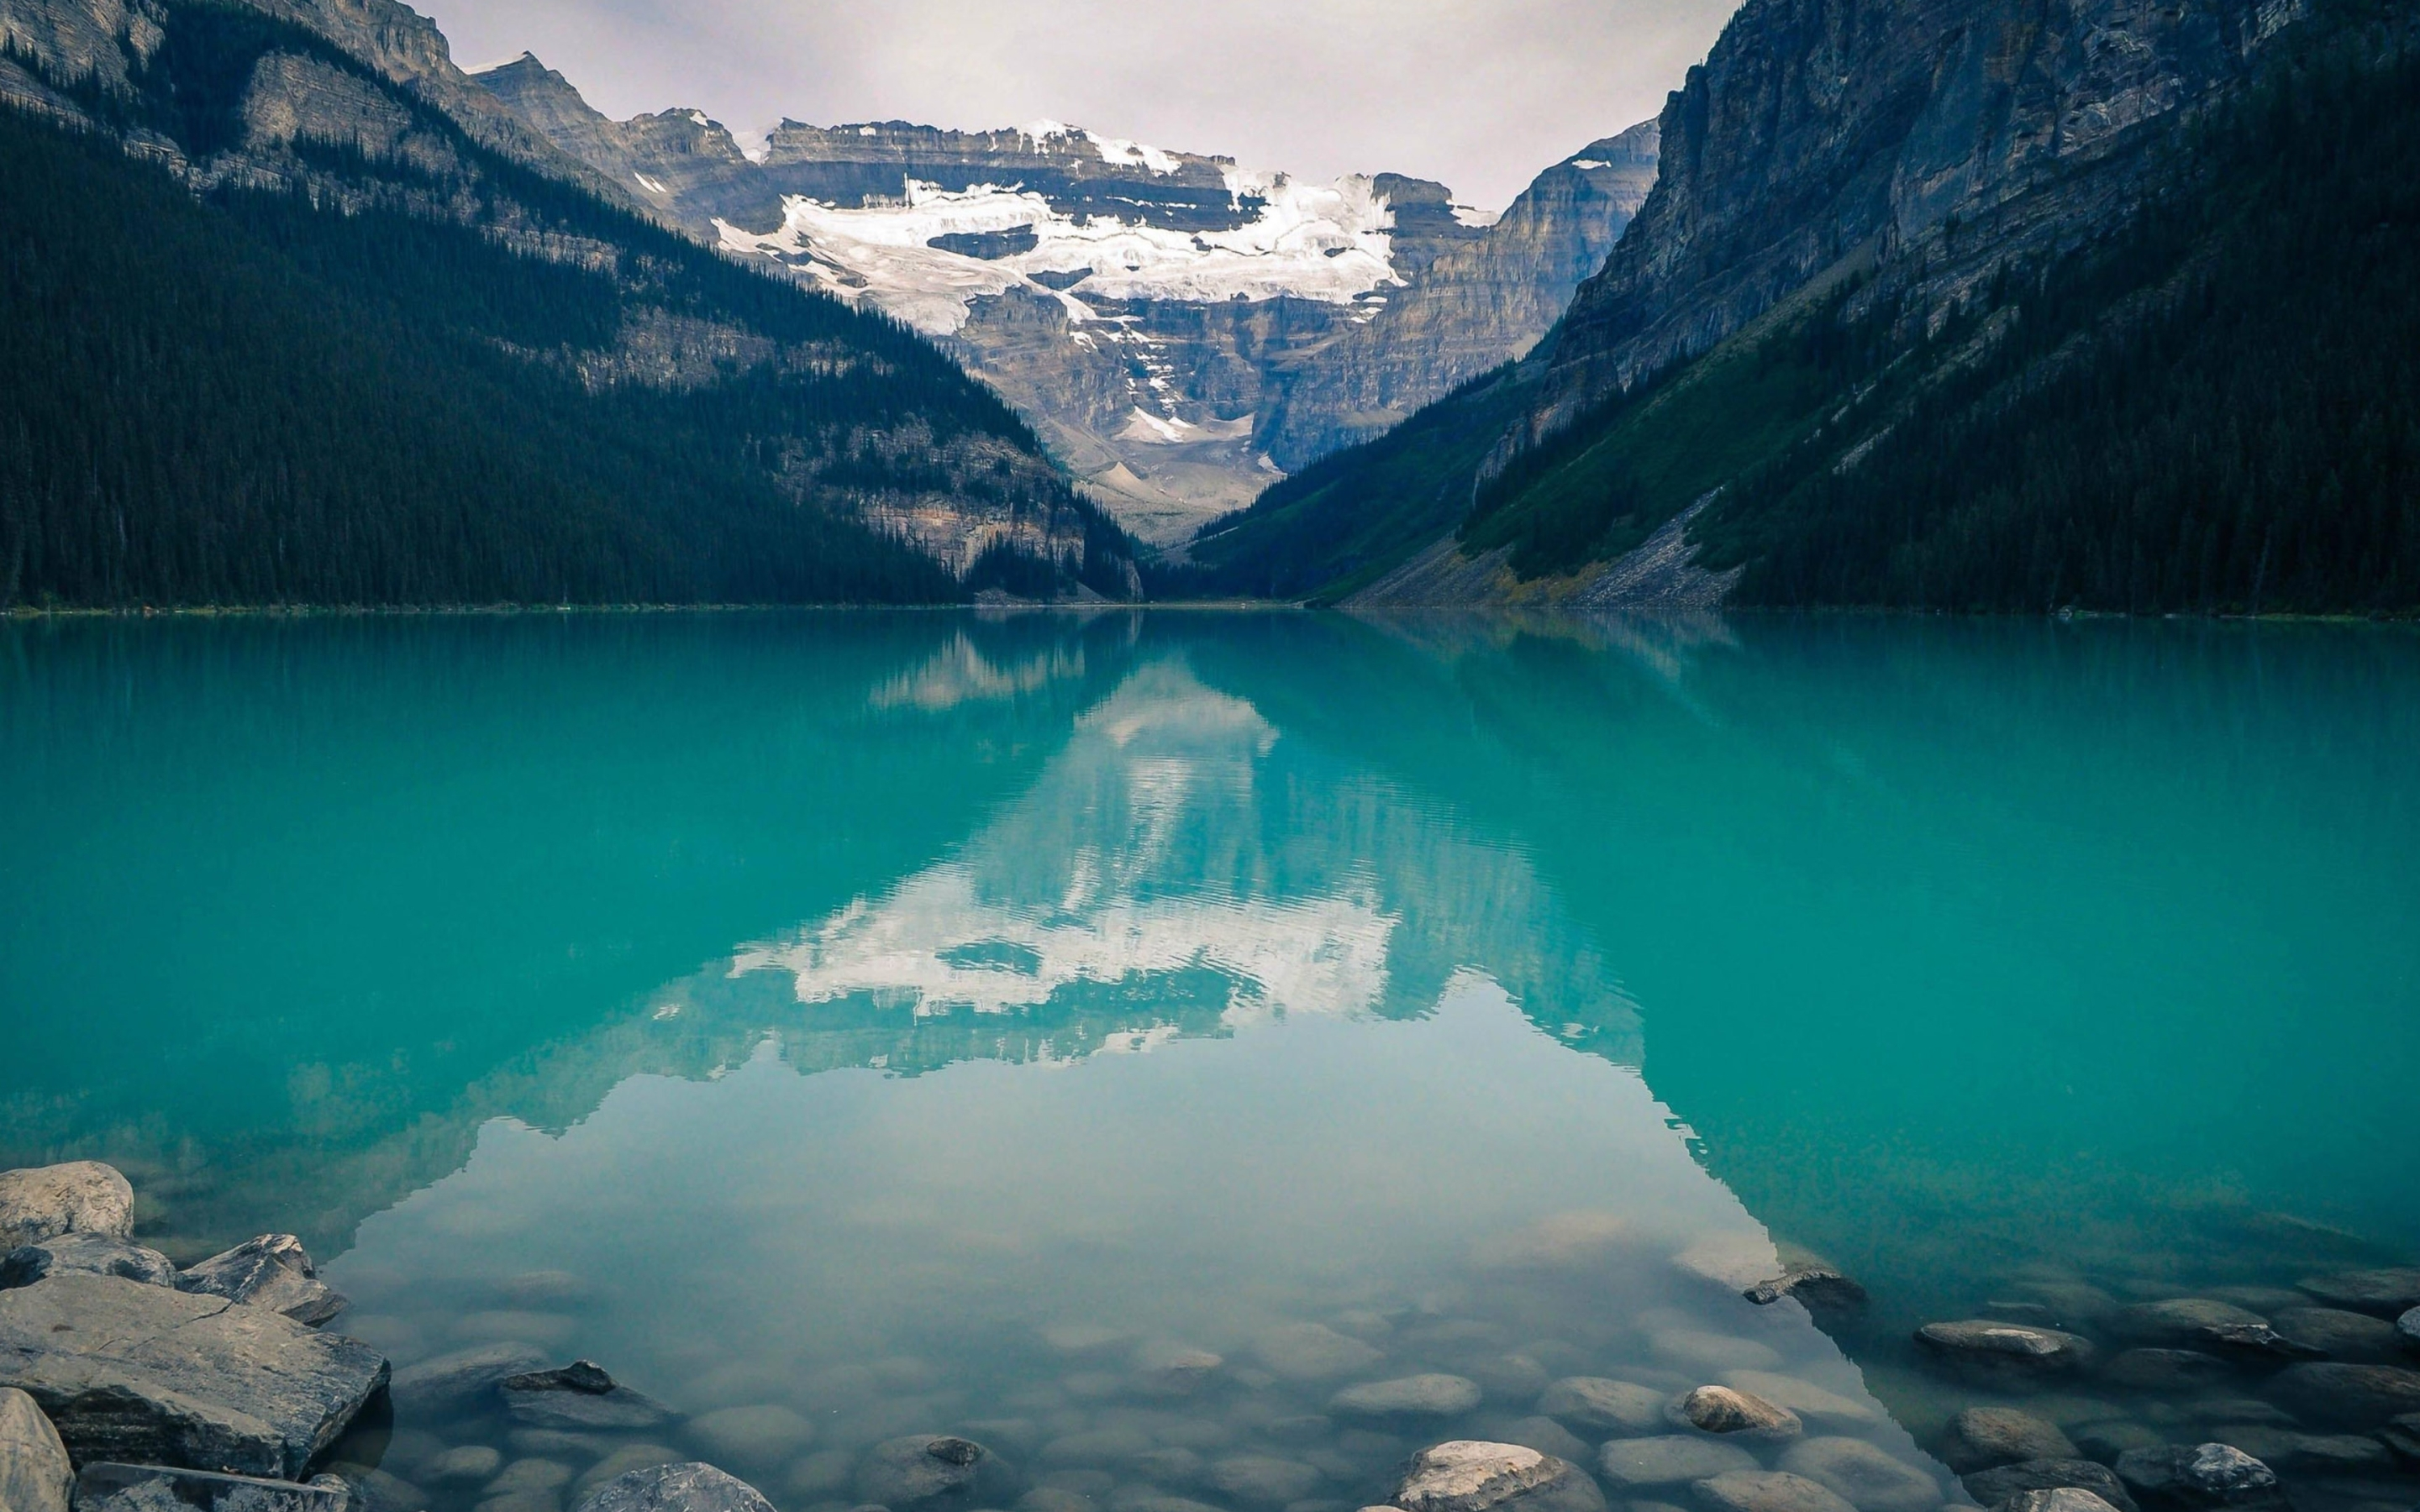 lake louise canada mac wallpaper download | free mac wallpapers download